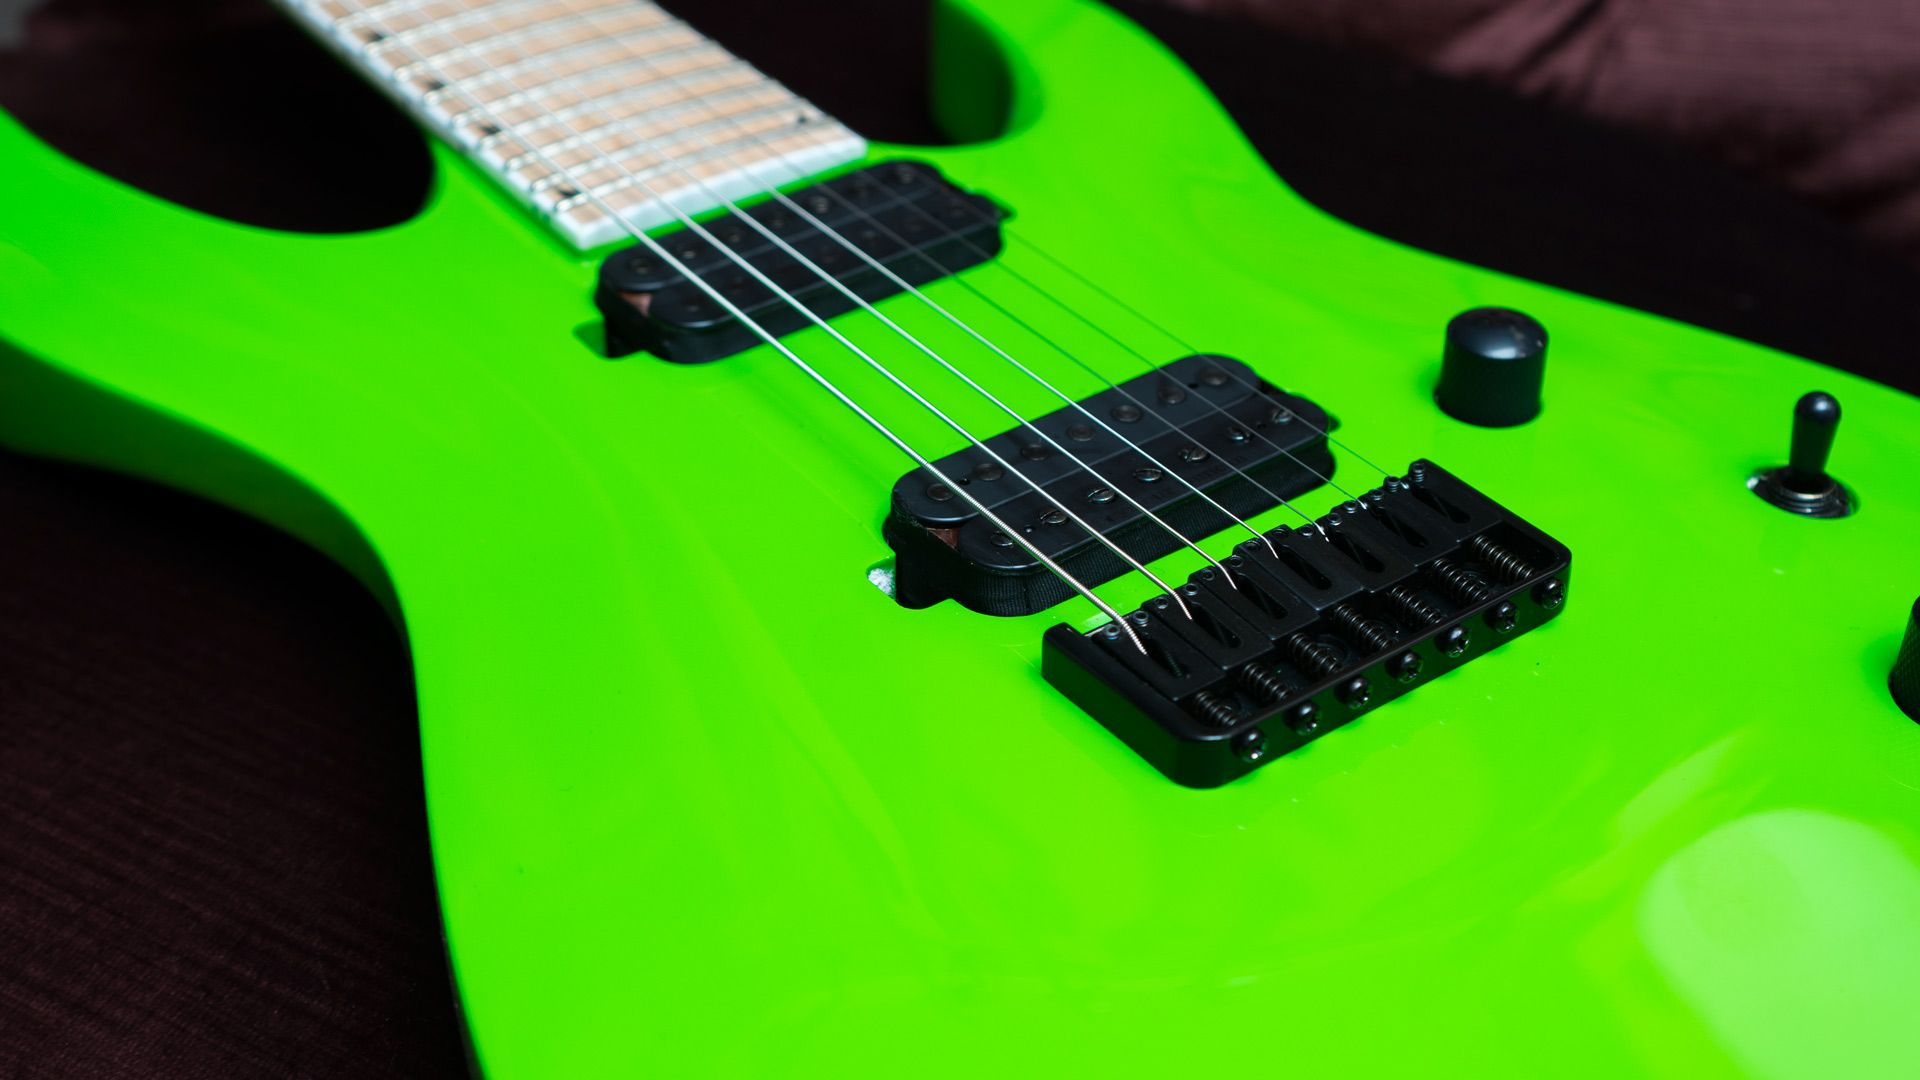 You can't have enough Green Slime! The Jackson Soloist 7-String Slime Green http://ow.ly/TXOGr @JacksonGuitars